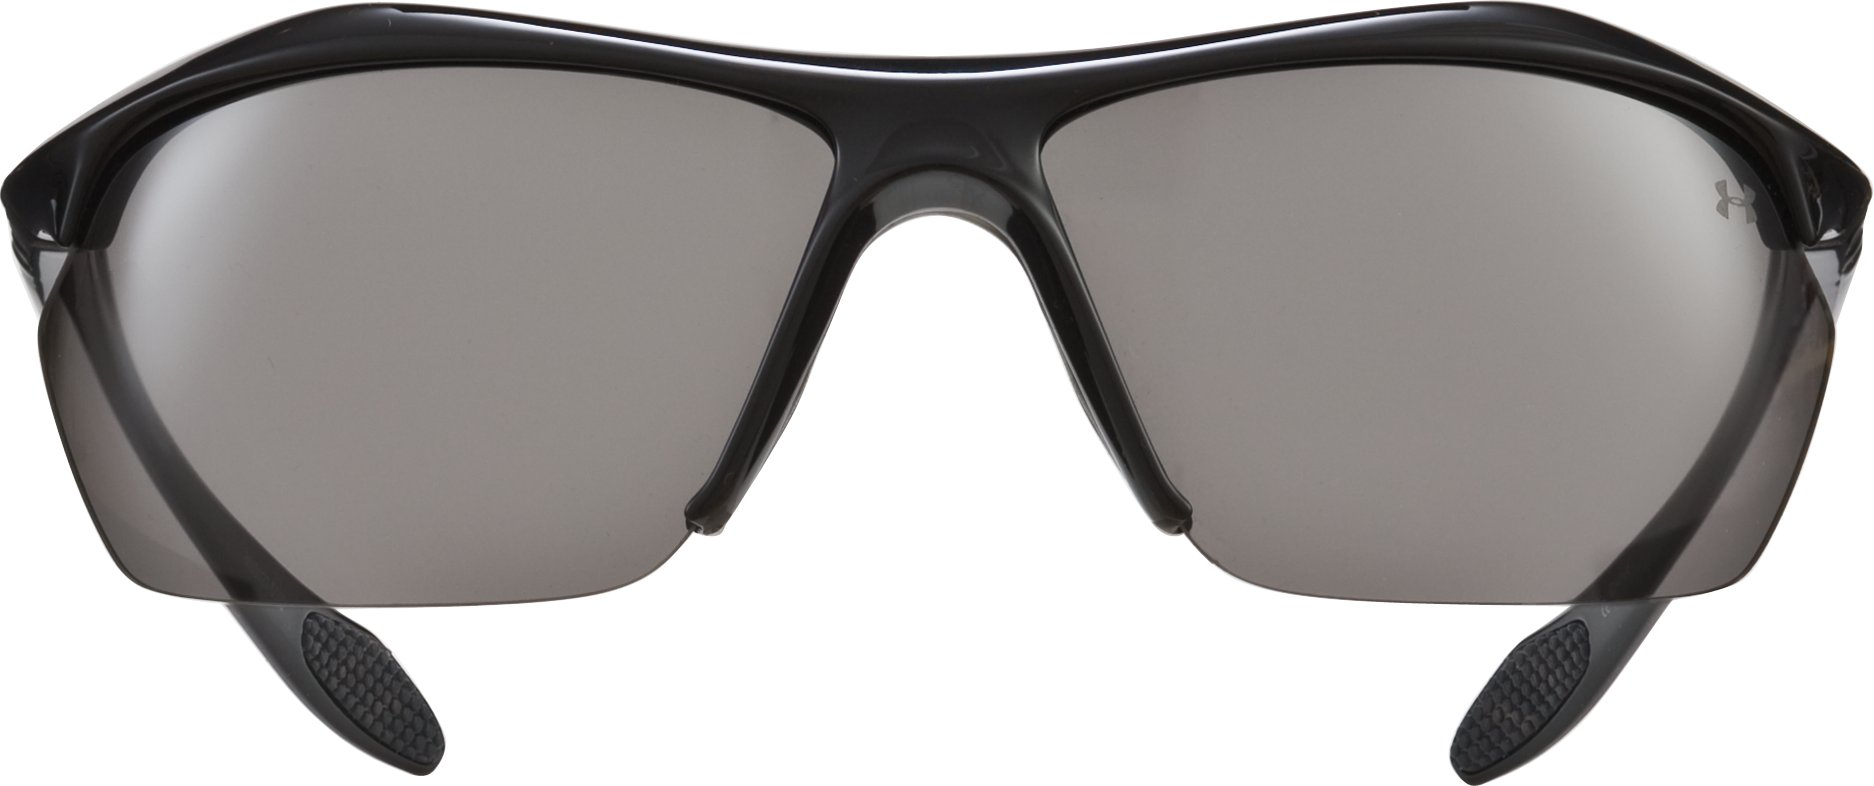 UA Zone XL Sunglasses, Shiny Black